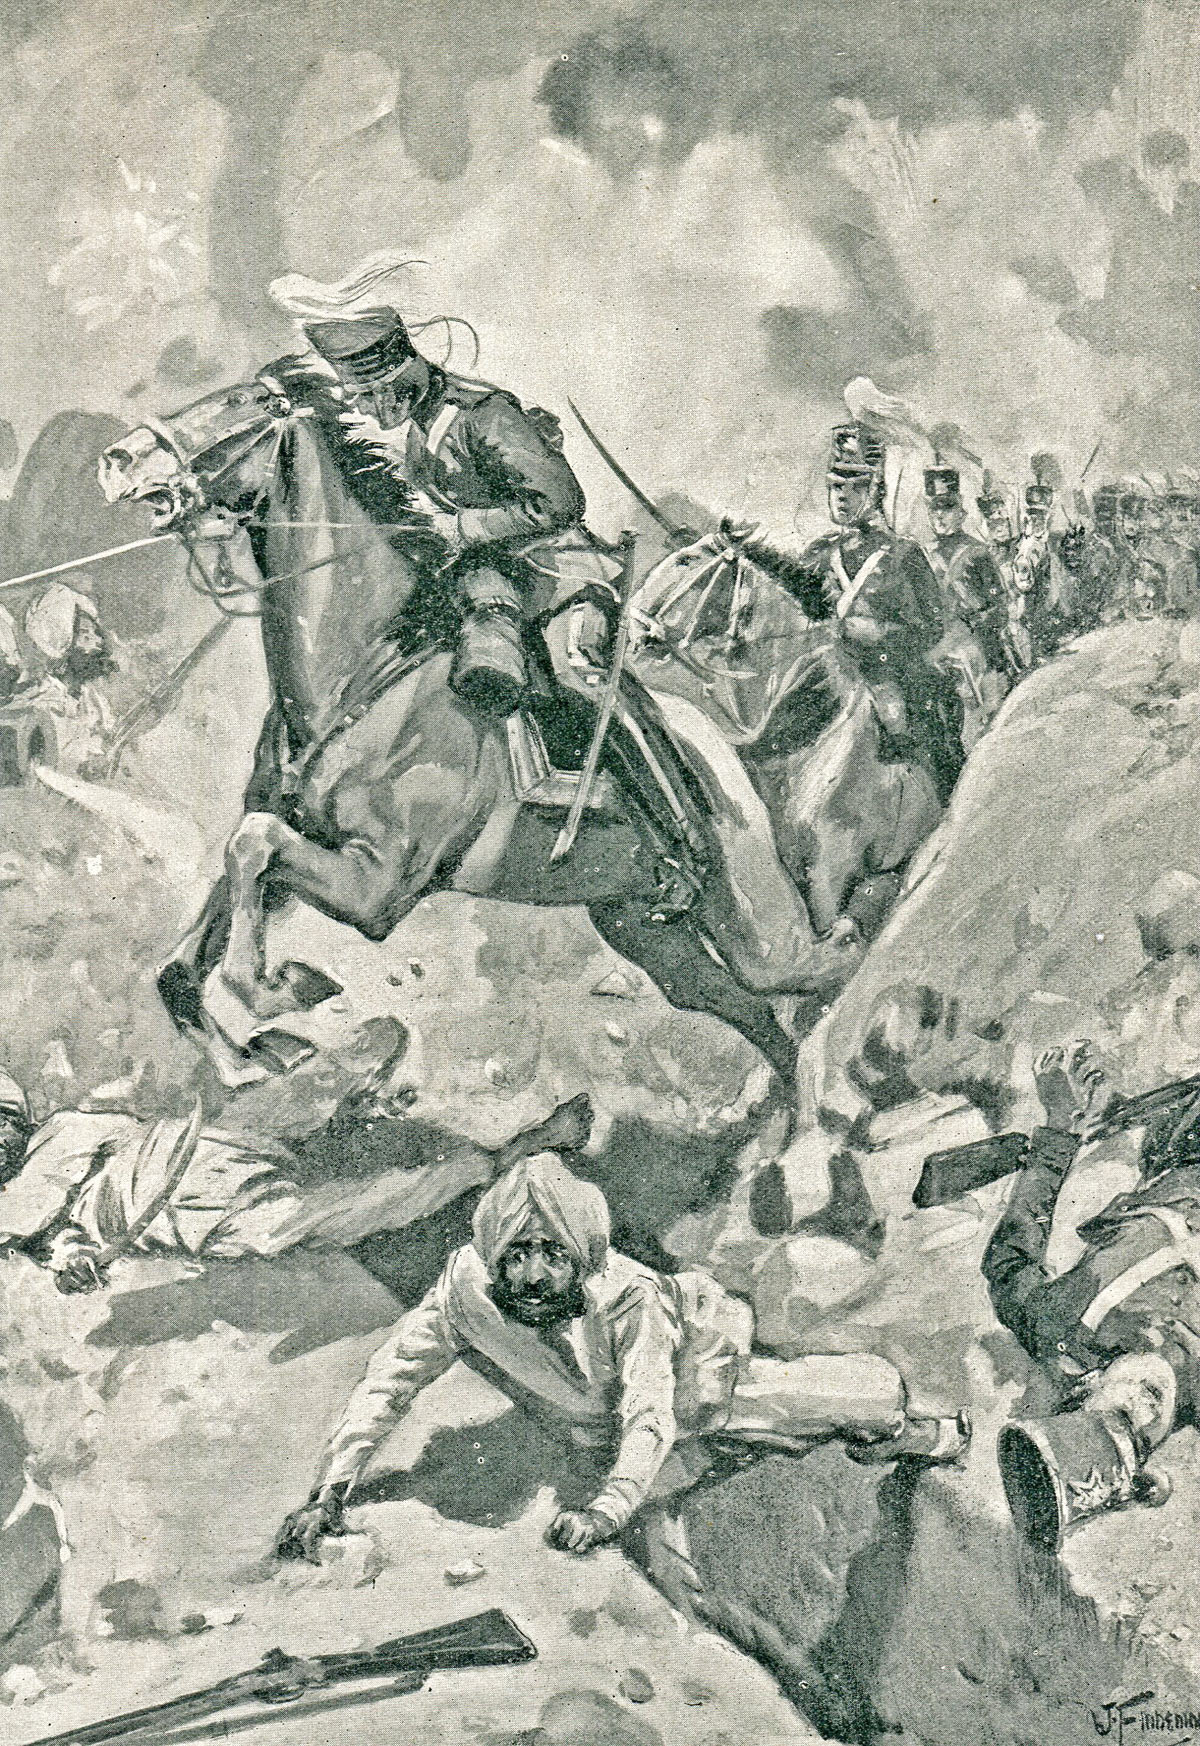 Sir Joseph Thwackwell leads 3rd King's Light Dragoons through the Sikh rampart at the Battle of Sobraon on 10th February 1846 during the First Sikh War